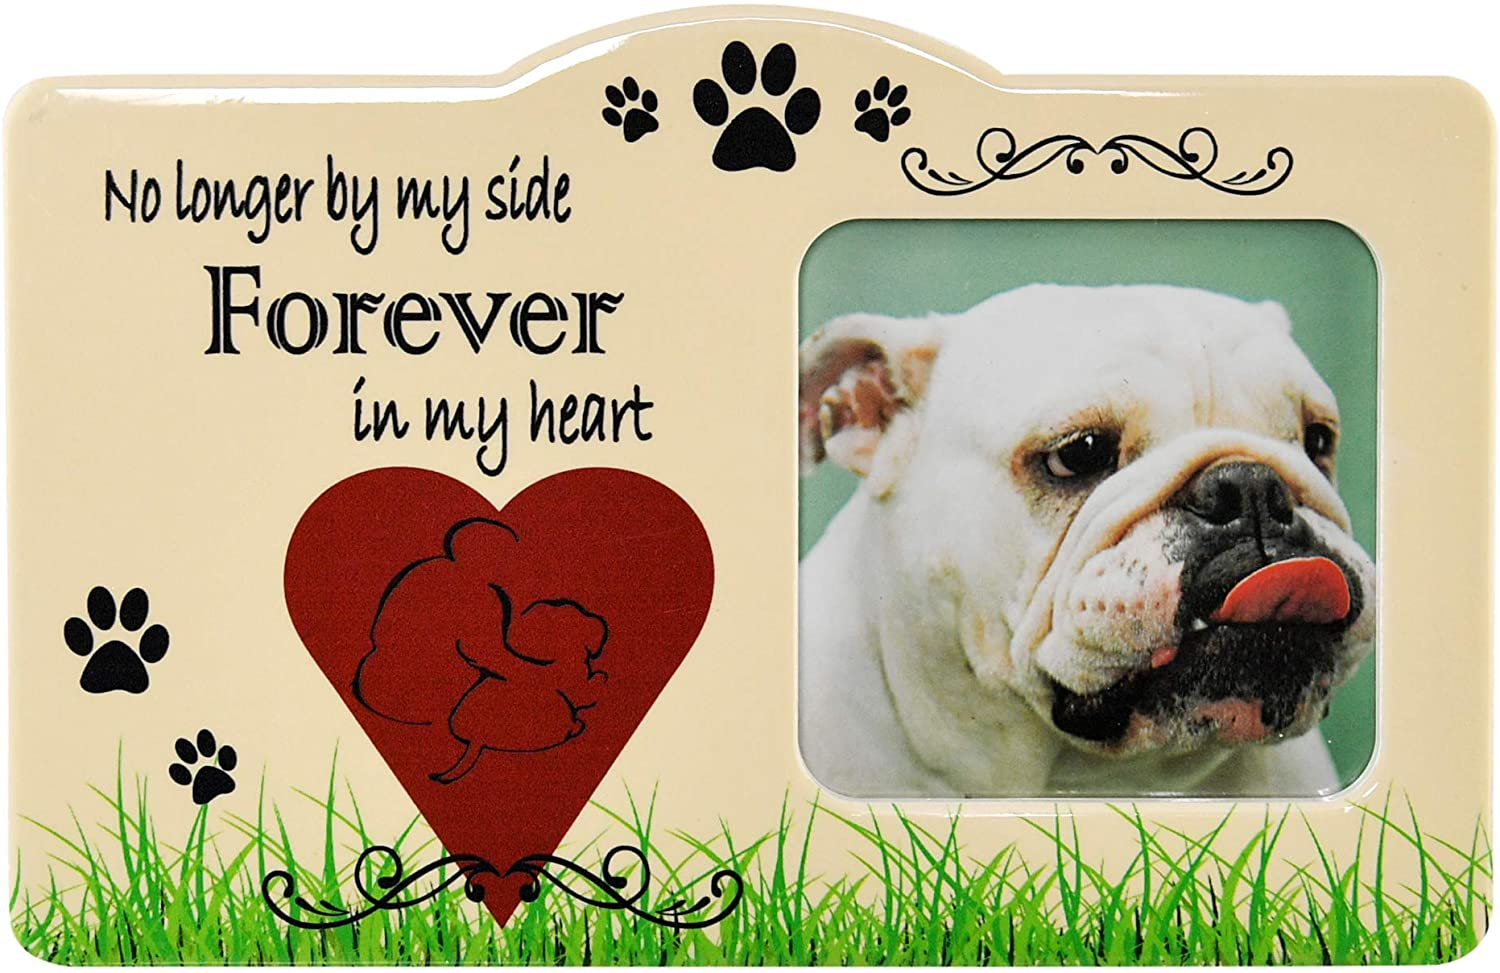 """Home-X Pet Memorial Frame-No Longer by My Side Forever in My Heart-Remembrance Picture Frame, Sympathy for Loss of Dog-Fits Standard 4x6"""" Photograph"""